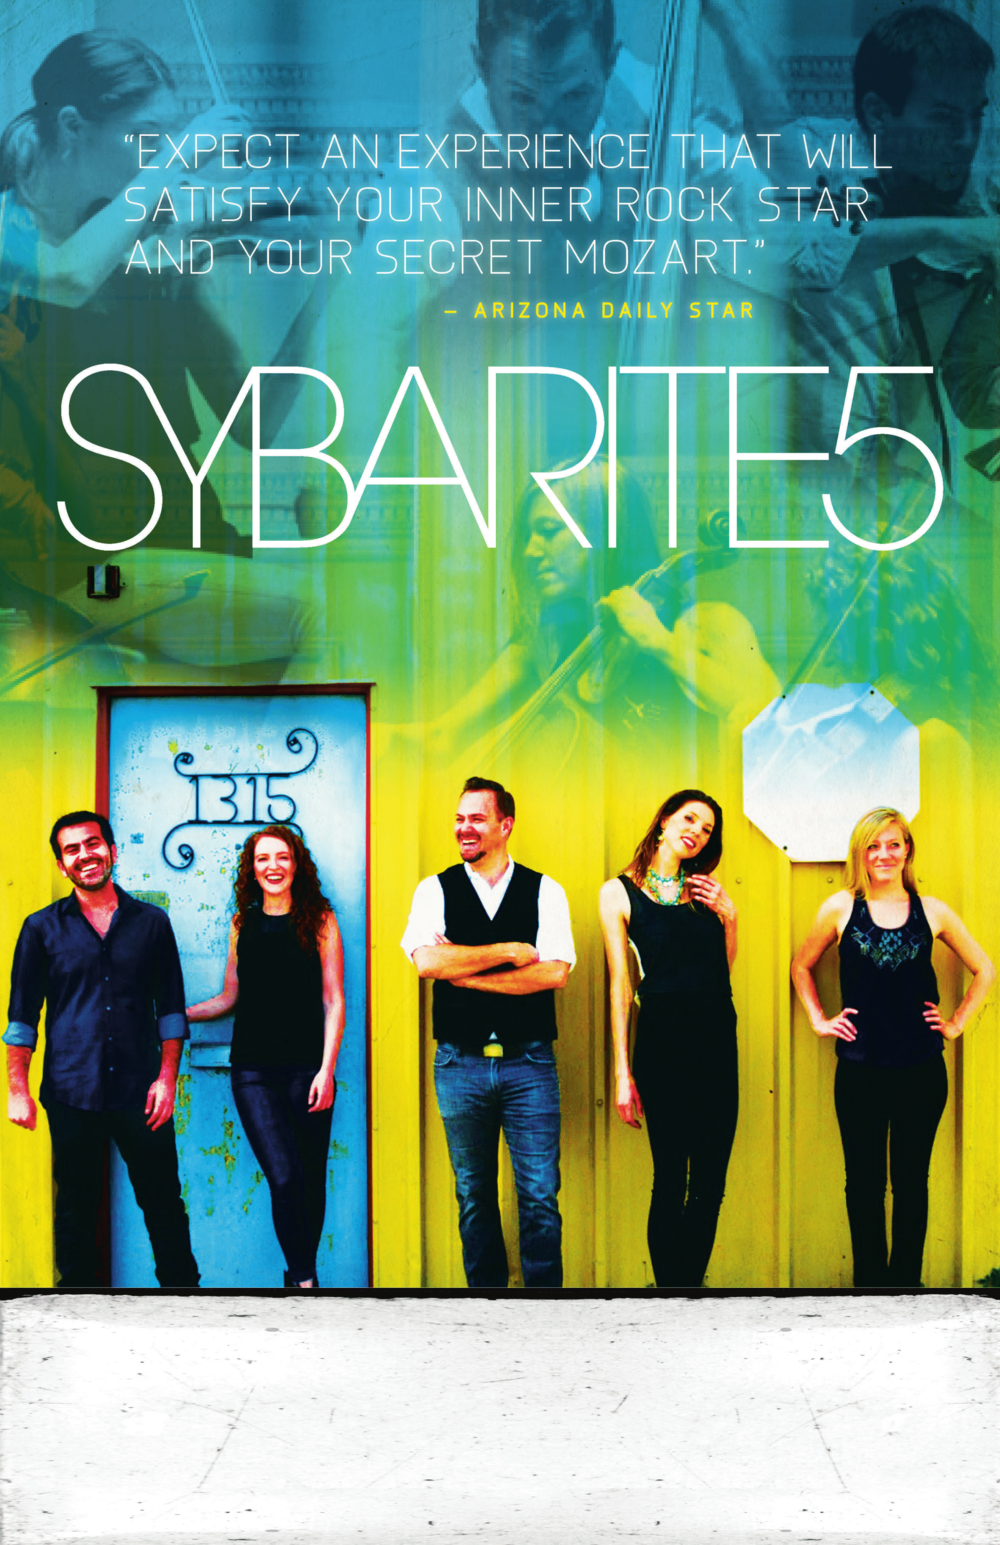 Sybarite5_Poster_Customizable-YGB_11x17-1.png